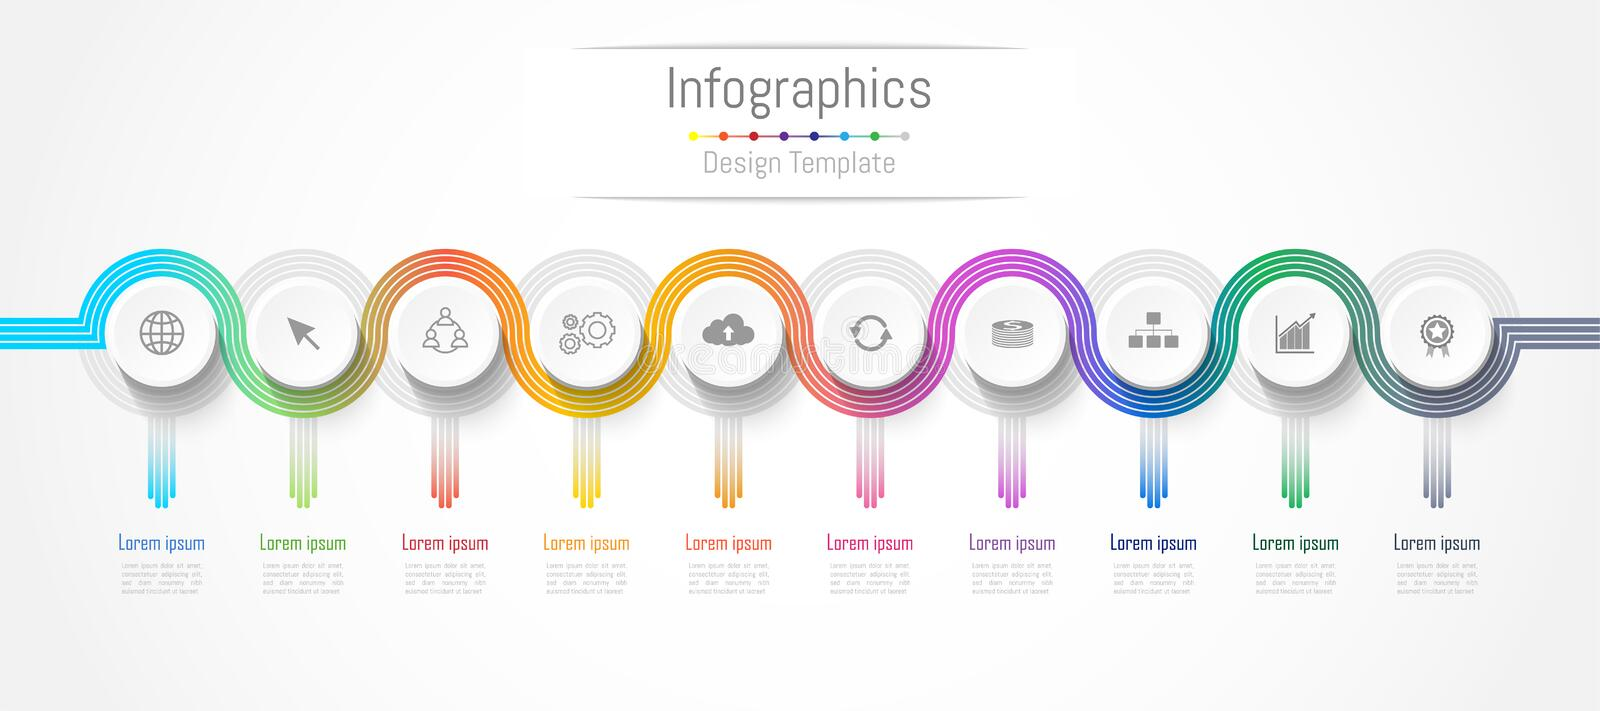 Infographic design elements for your business data with 10 options, parts, steps, timelines or processes. connection lines concept. Vector Illustration royalty free illustration